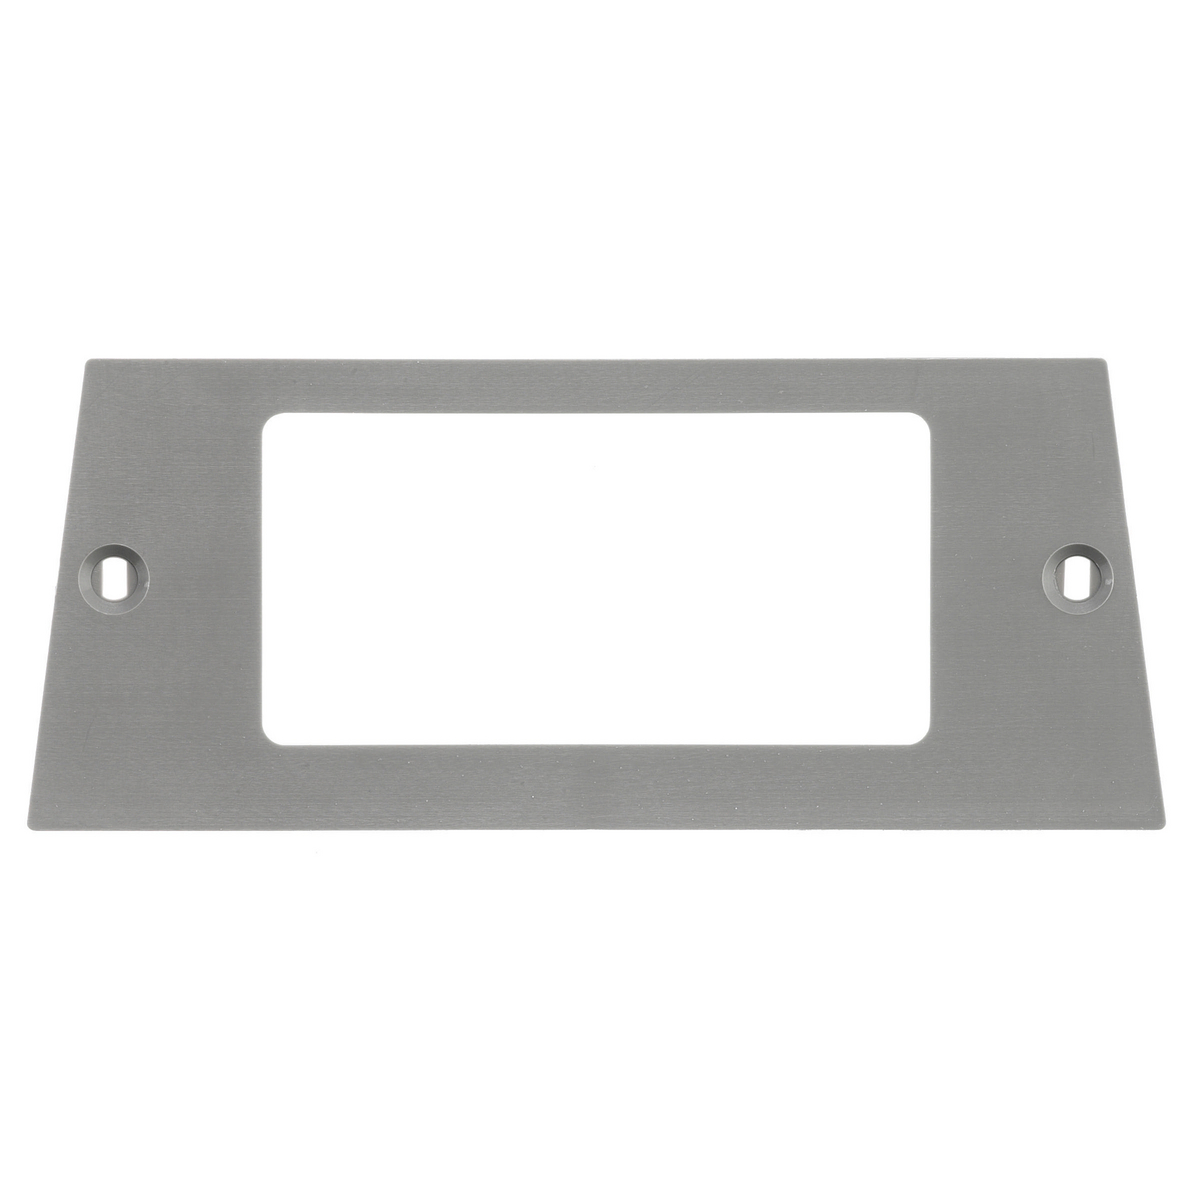 Hubbell LCFBP26 1.88 x 4.52 Inch Decorator Face Plate